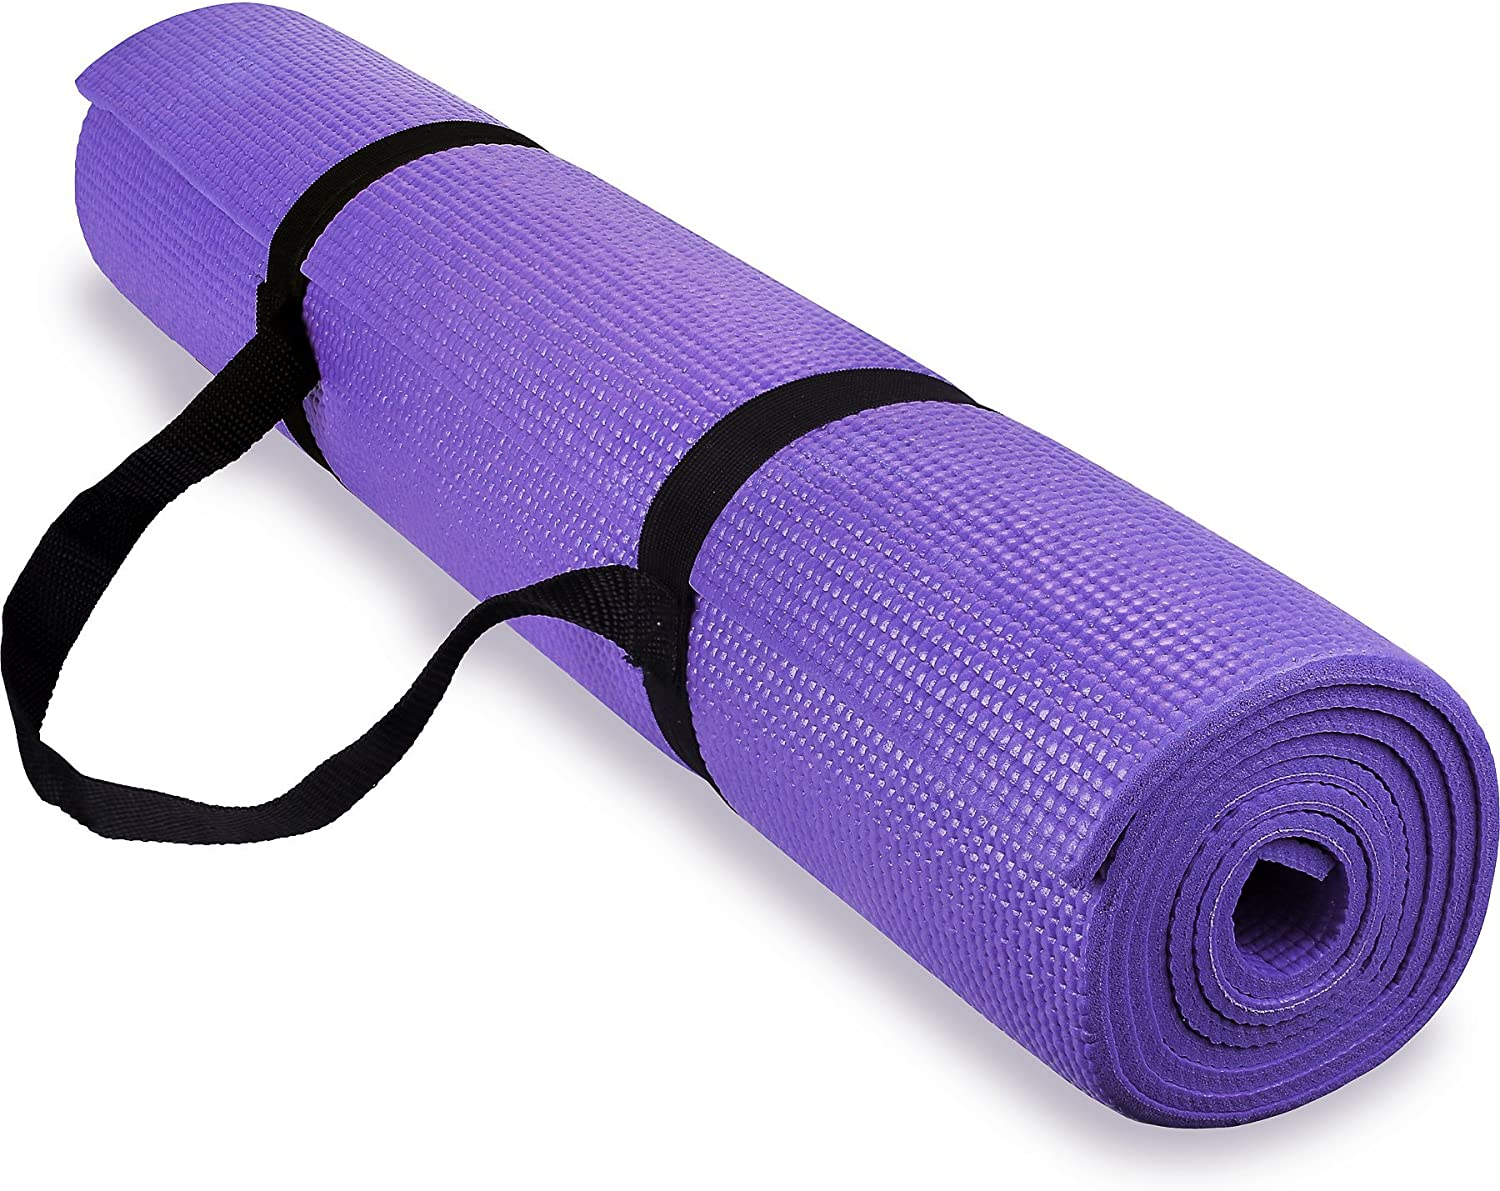 Spoga 1 4-Inch Anti-Slip Exercise Yoga Mat with Carrying Strap